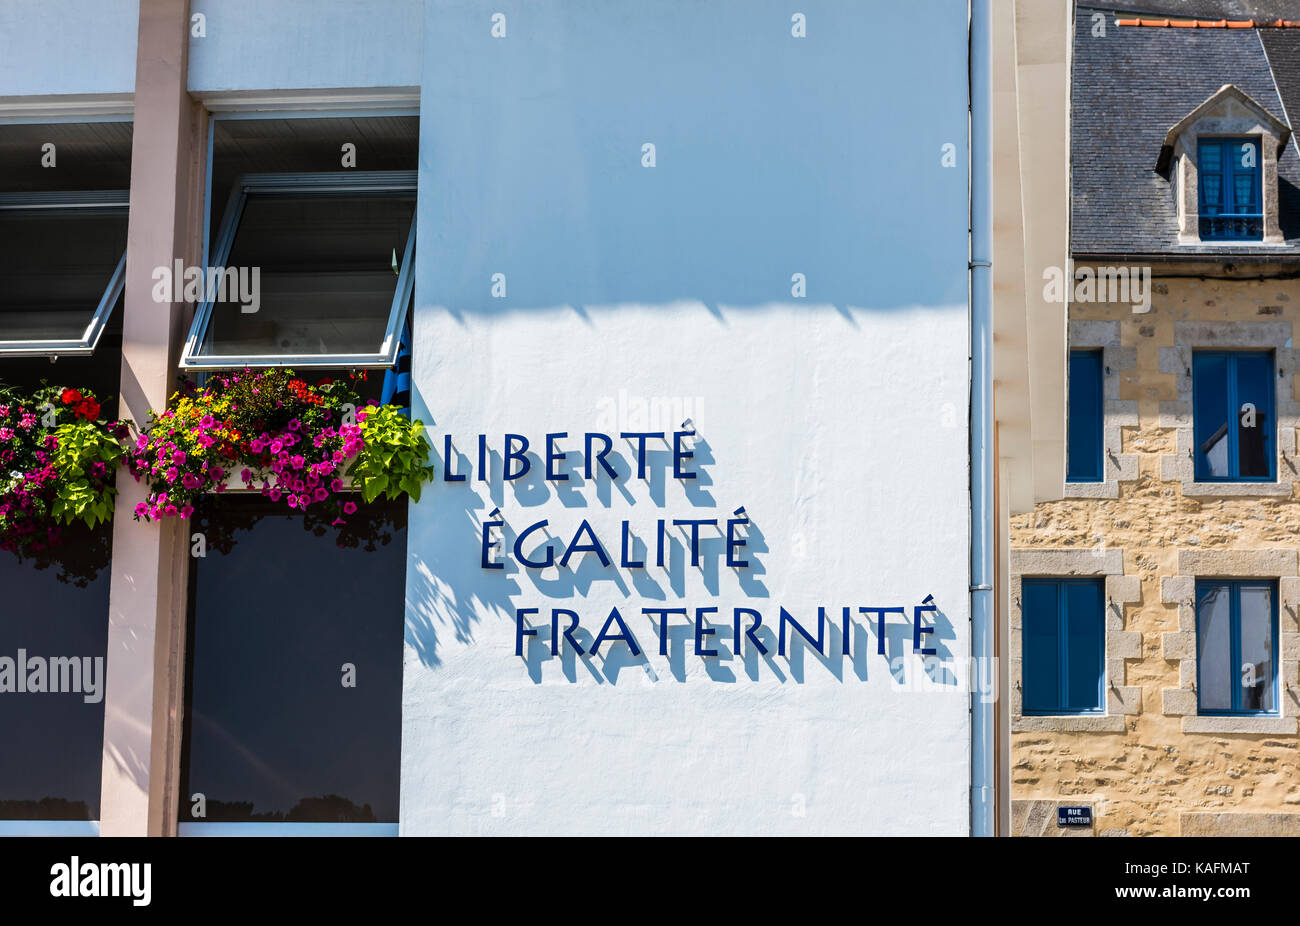 Abstract of a police building front in Brittany, France - Stock Image